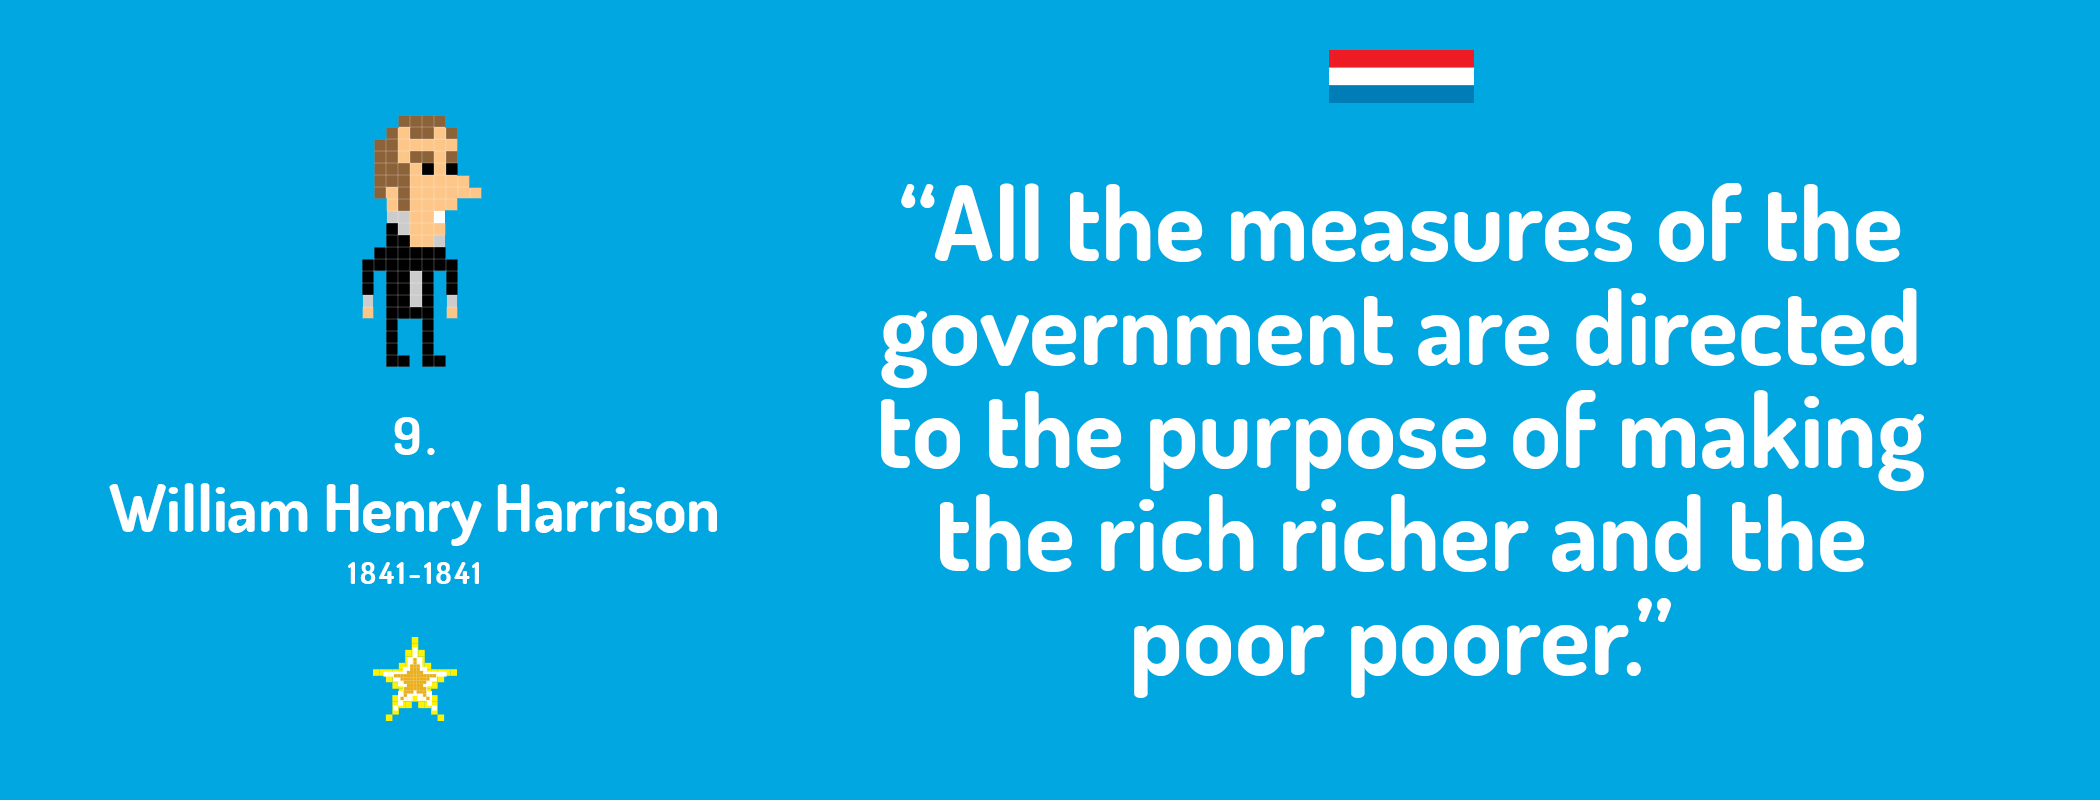 All the measures of the government are directed to the purpose of making the rich richer and the poor poorer.